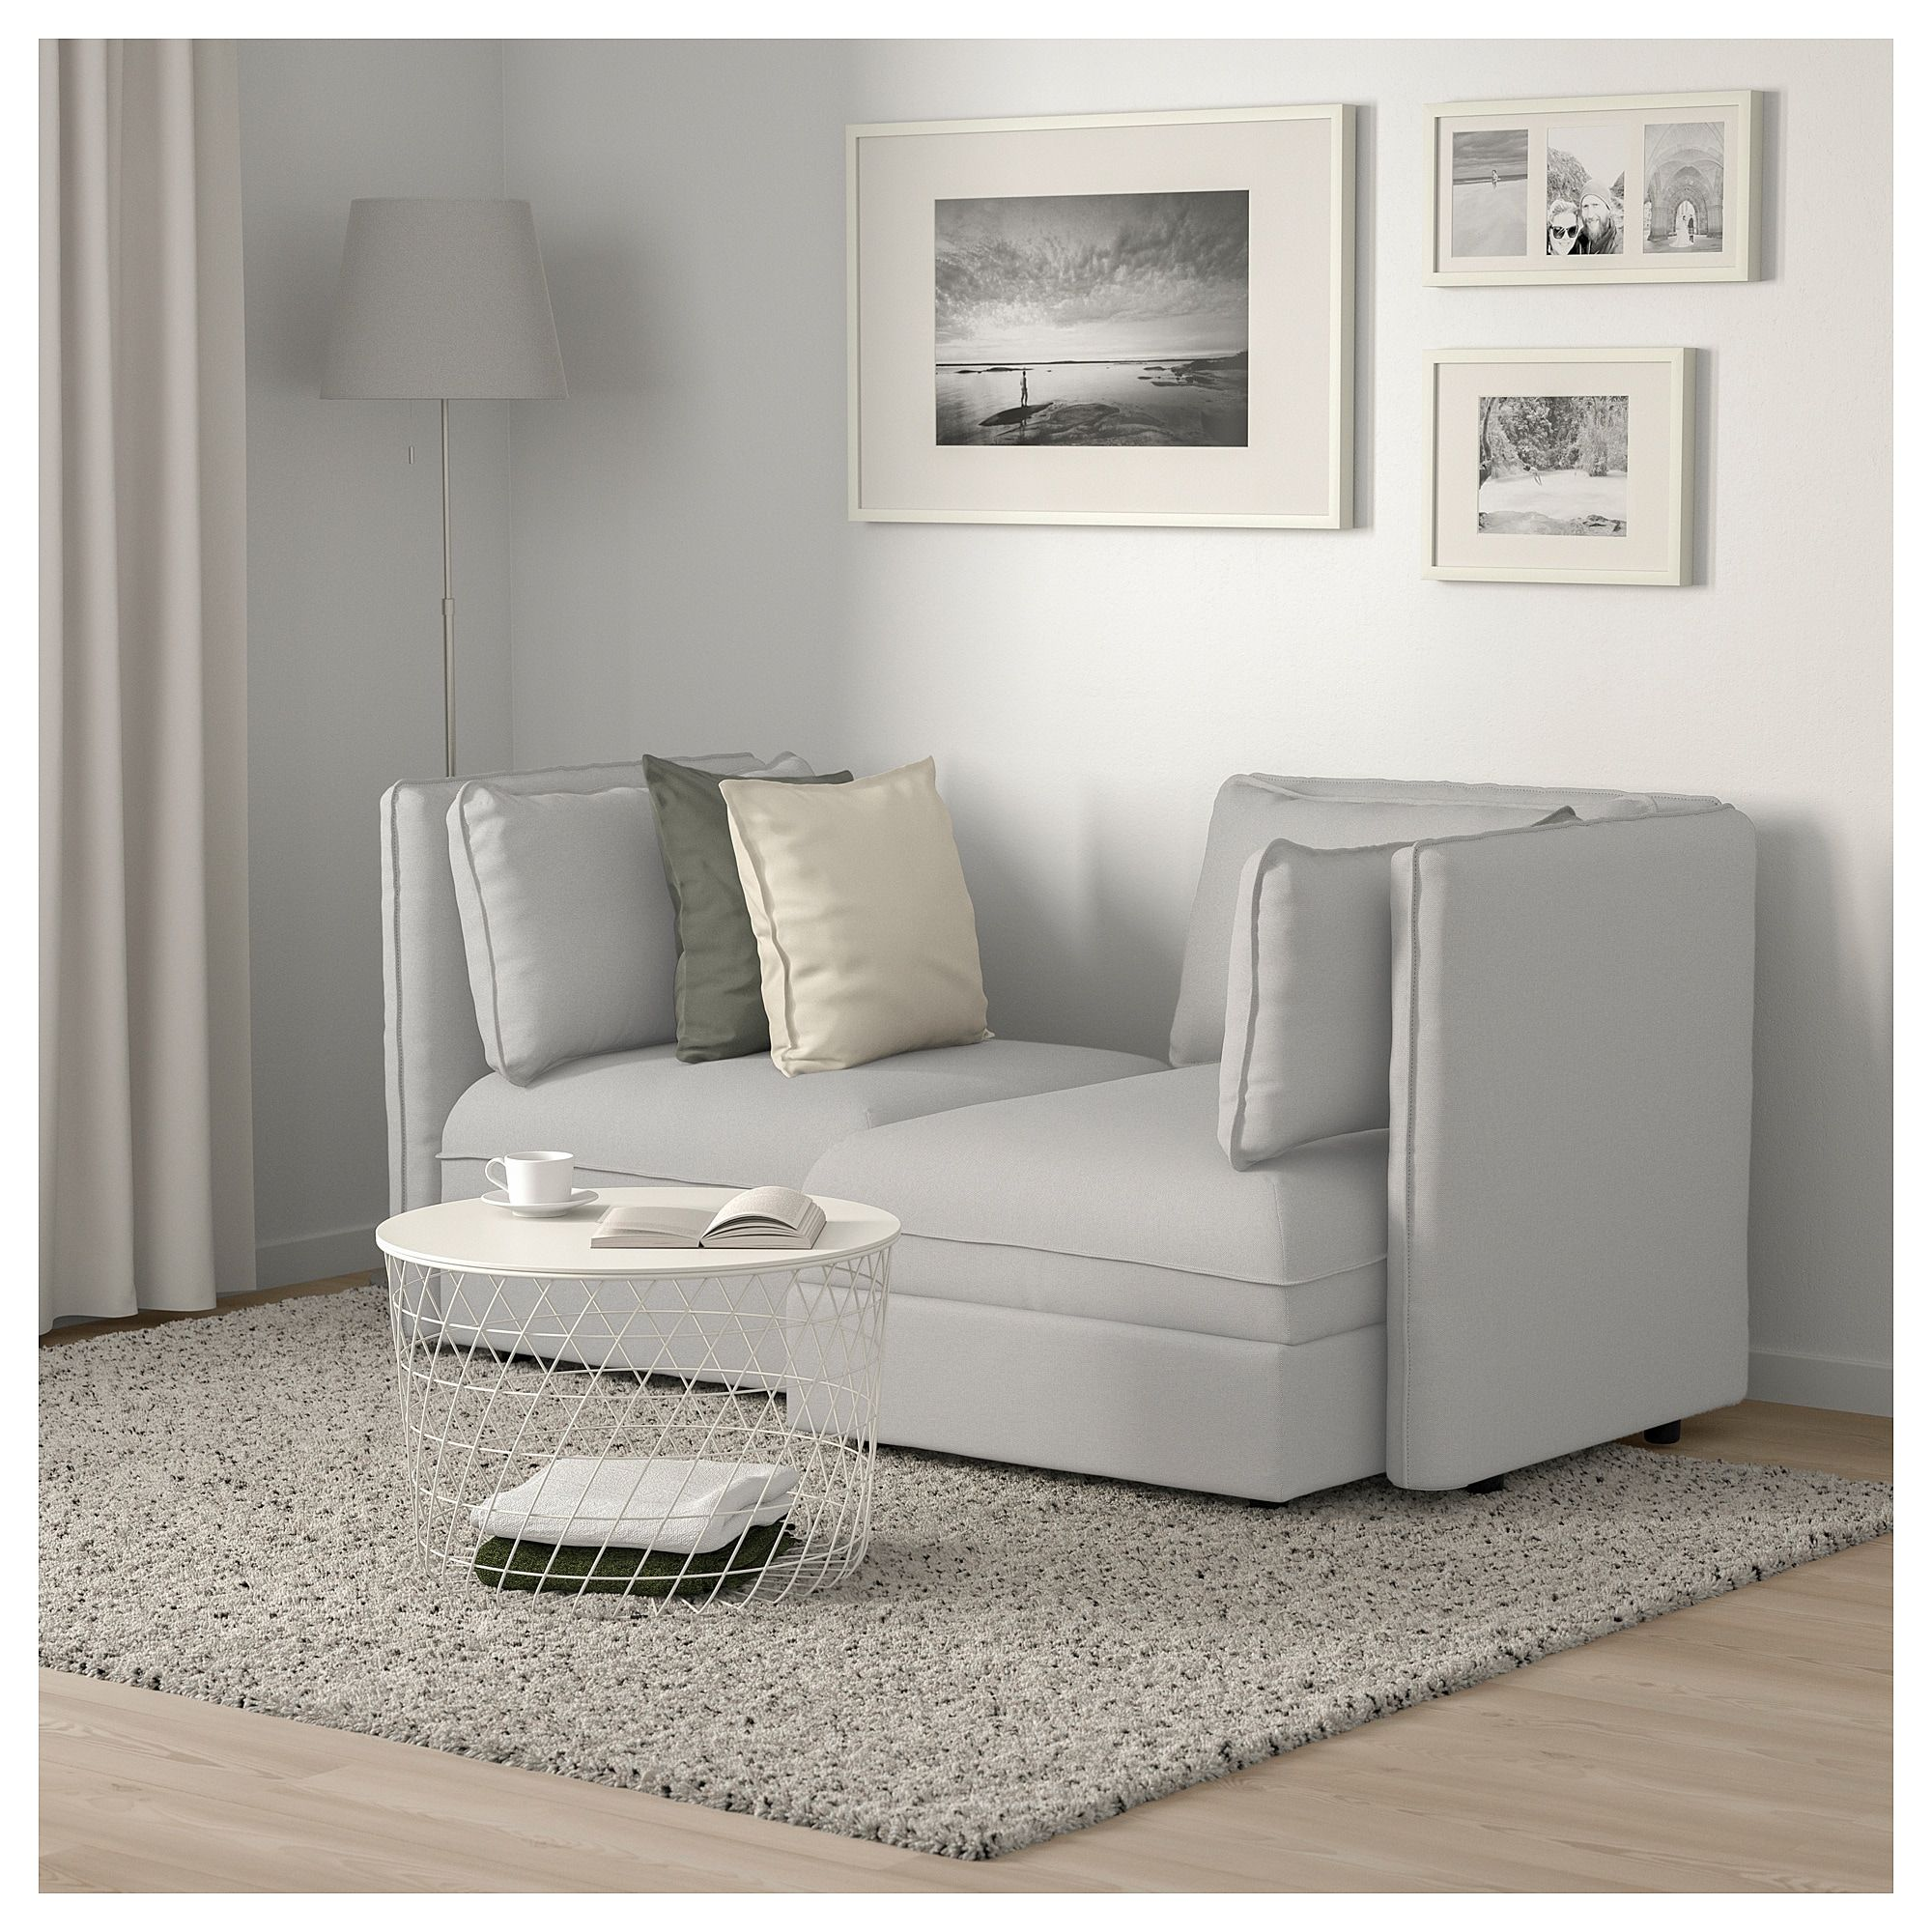 Astonishing Ikea Vallentuna Modular Loveseat With Storage Orrsta Gmtry Best Dining Table And Chair Ideas Images Gmtryco